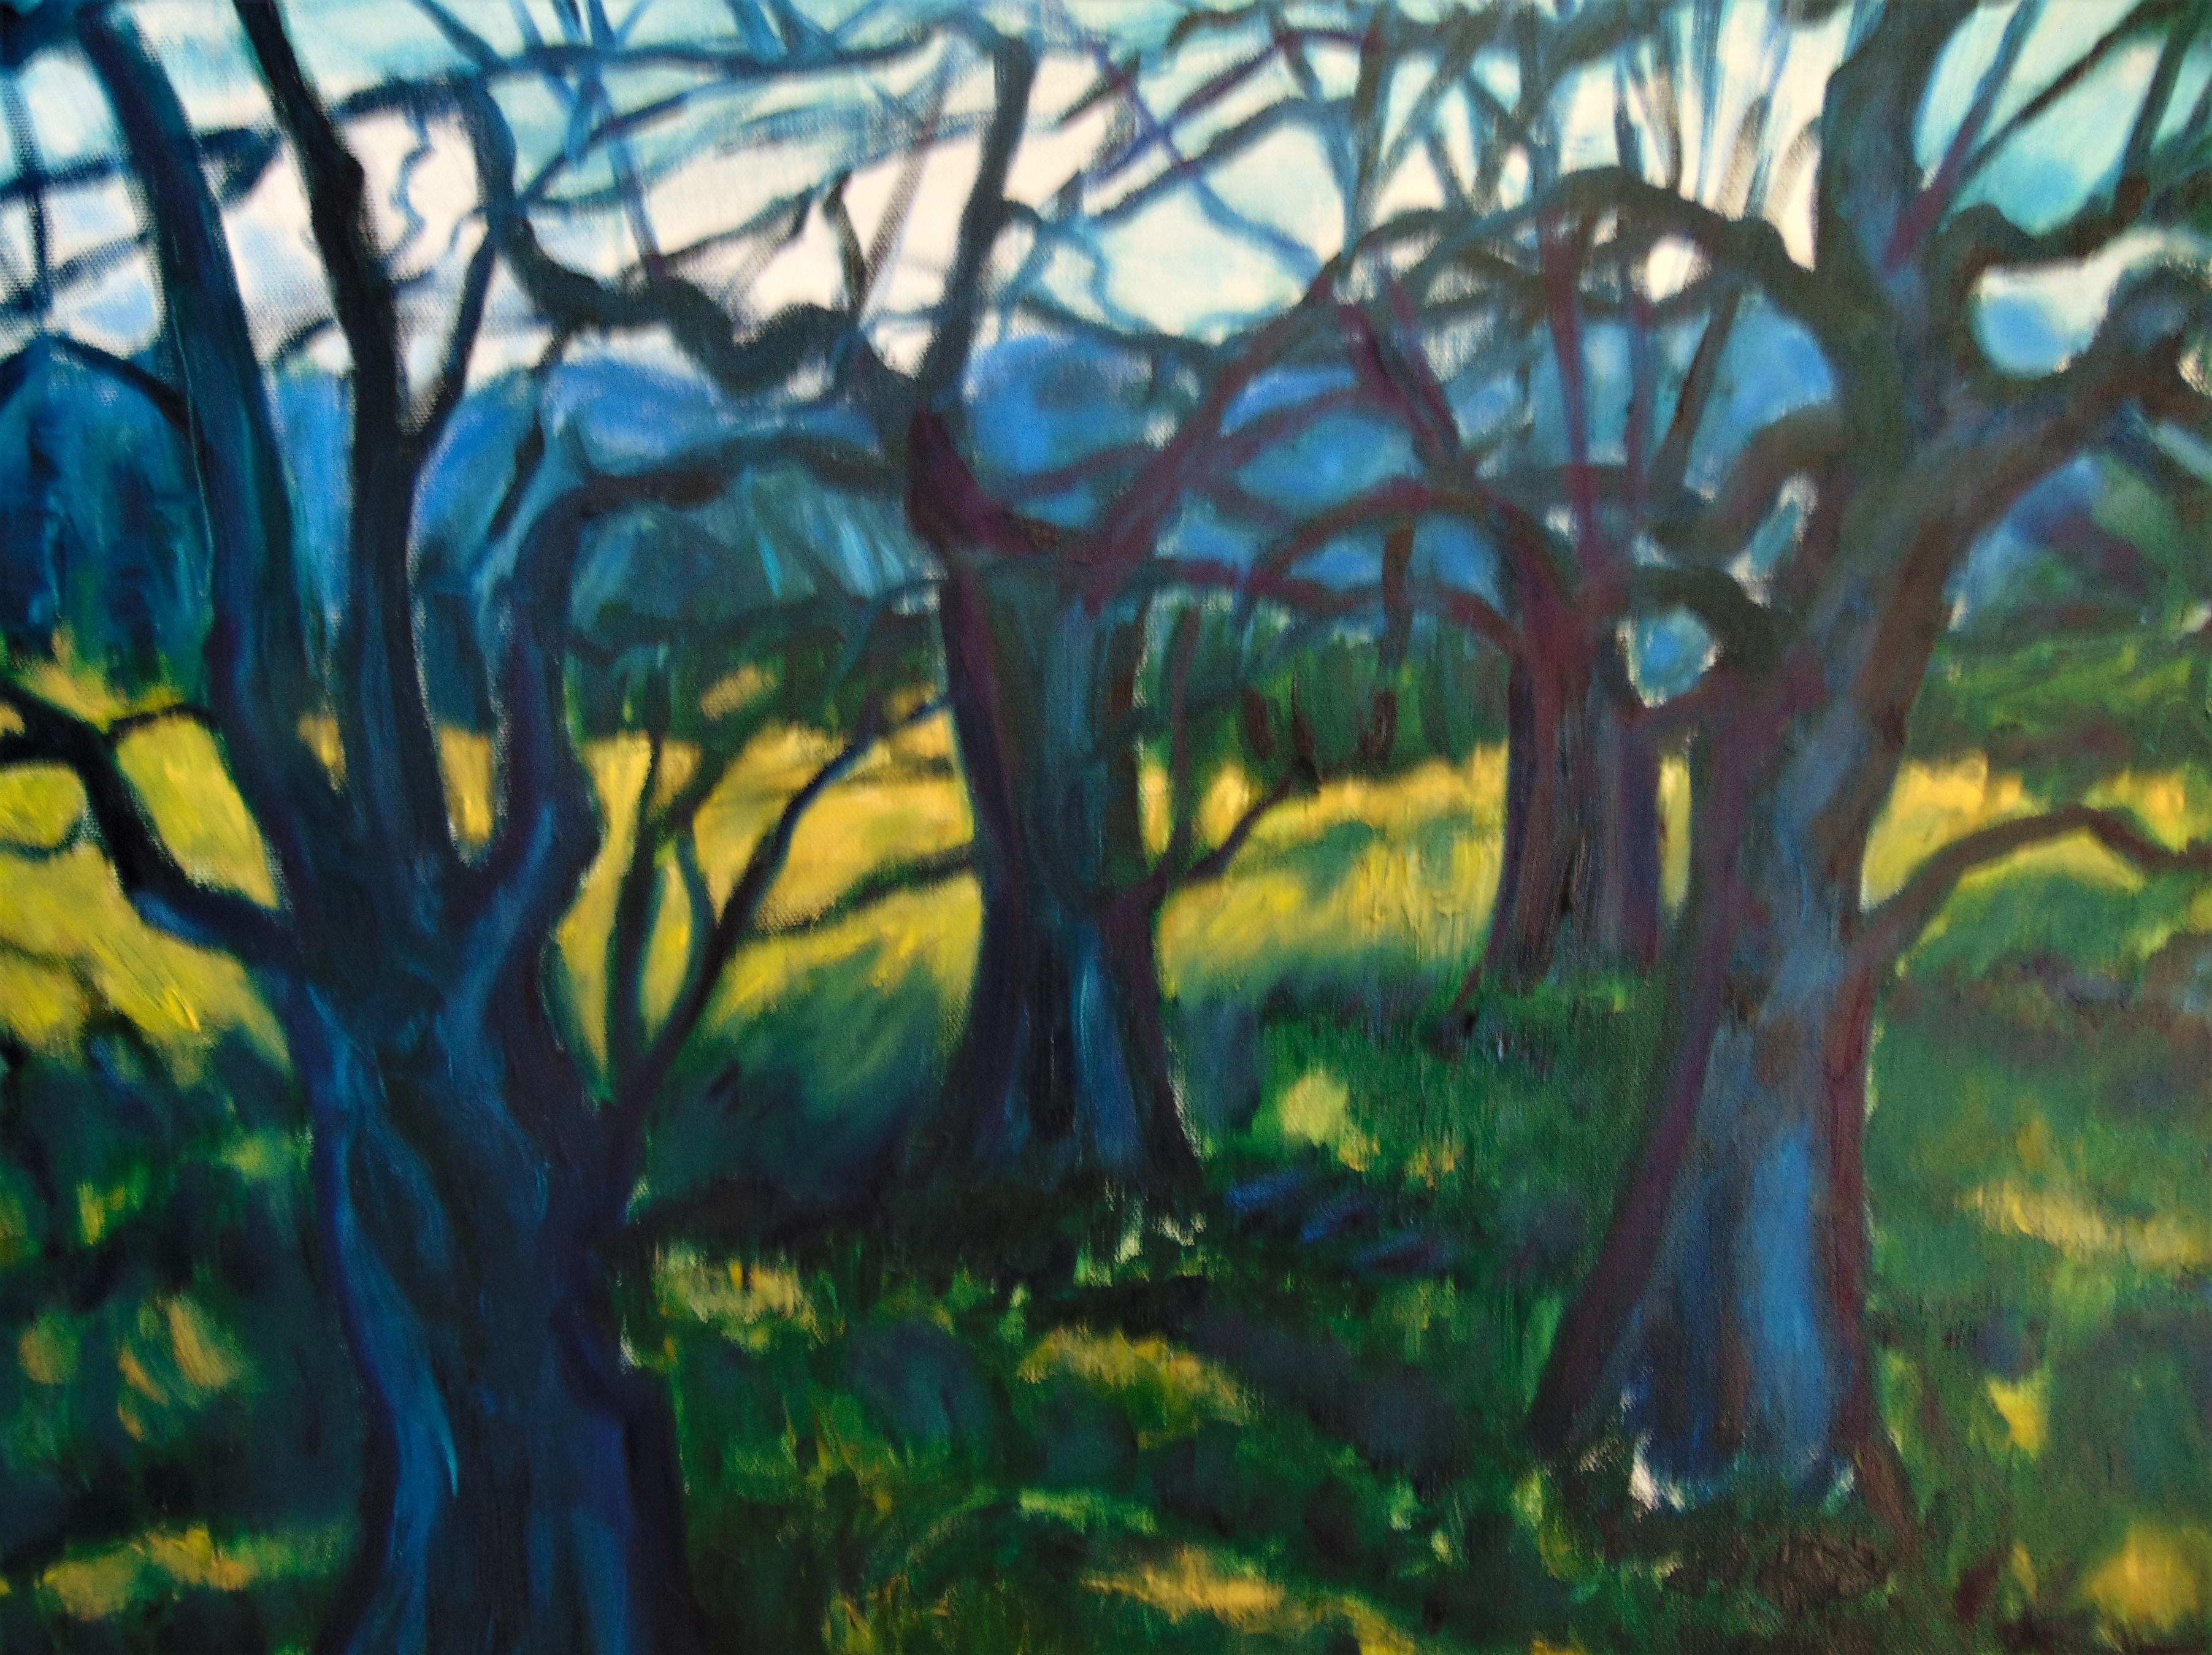 oil painting of twisted blue apple trees with blue mountains in backgroud and green and yellow field